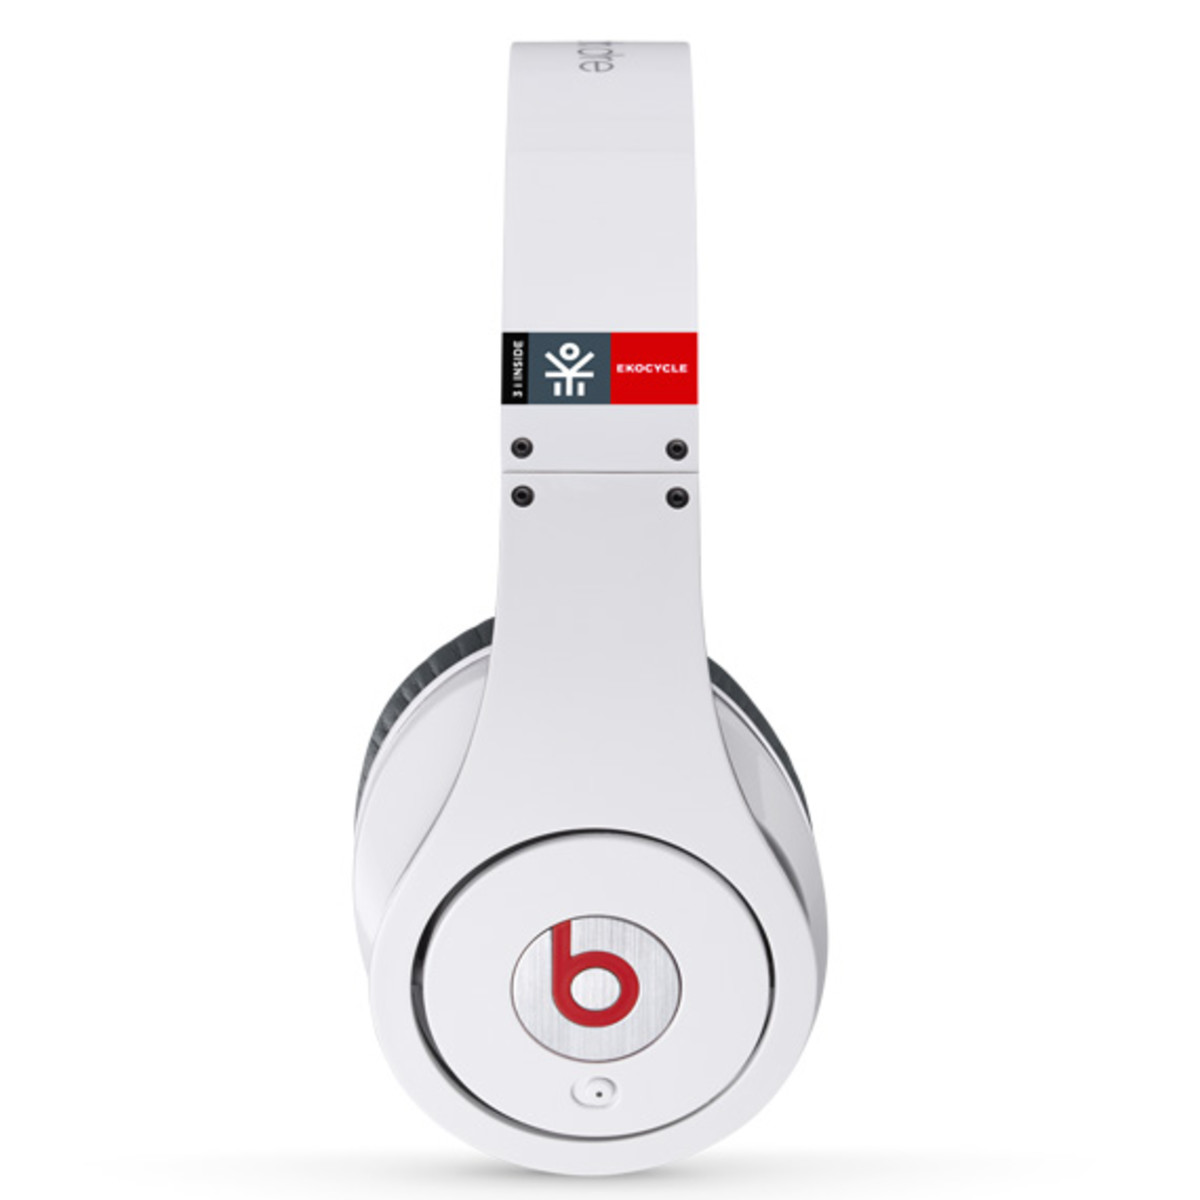 beats-by-dr-dre-studio-headphones-ekocycle-edition-william-coca-cola-06